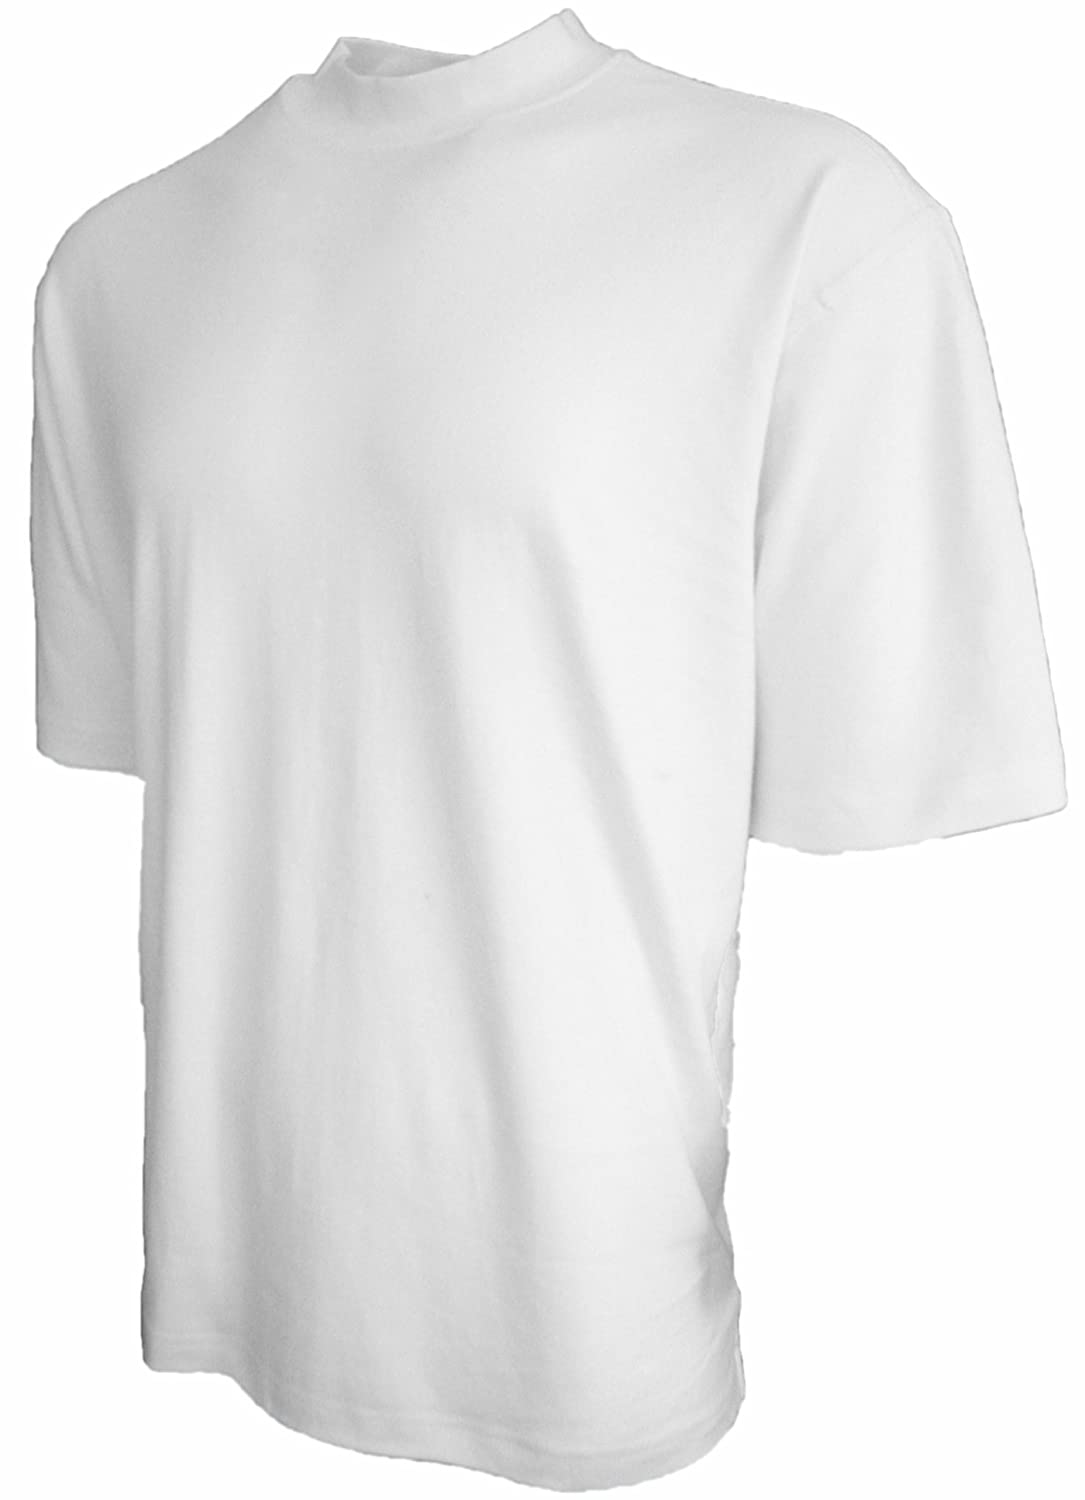 Top 10 Wholesale Most Popular T Shirt Brands Chinabrands Com